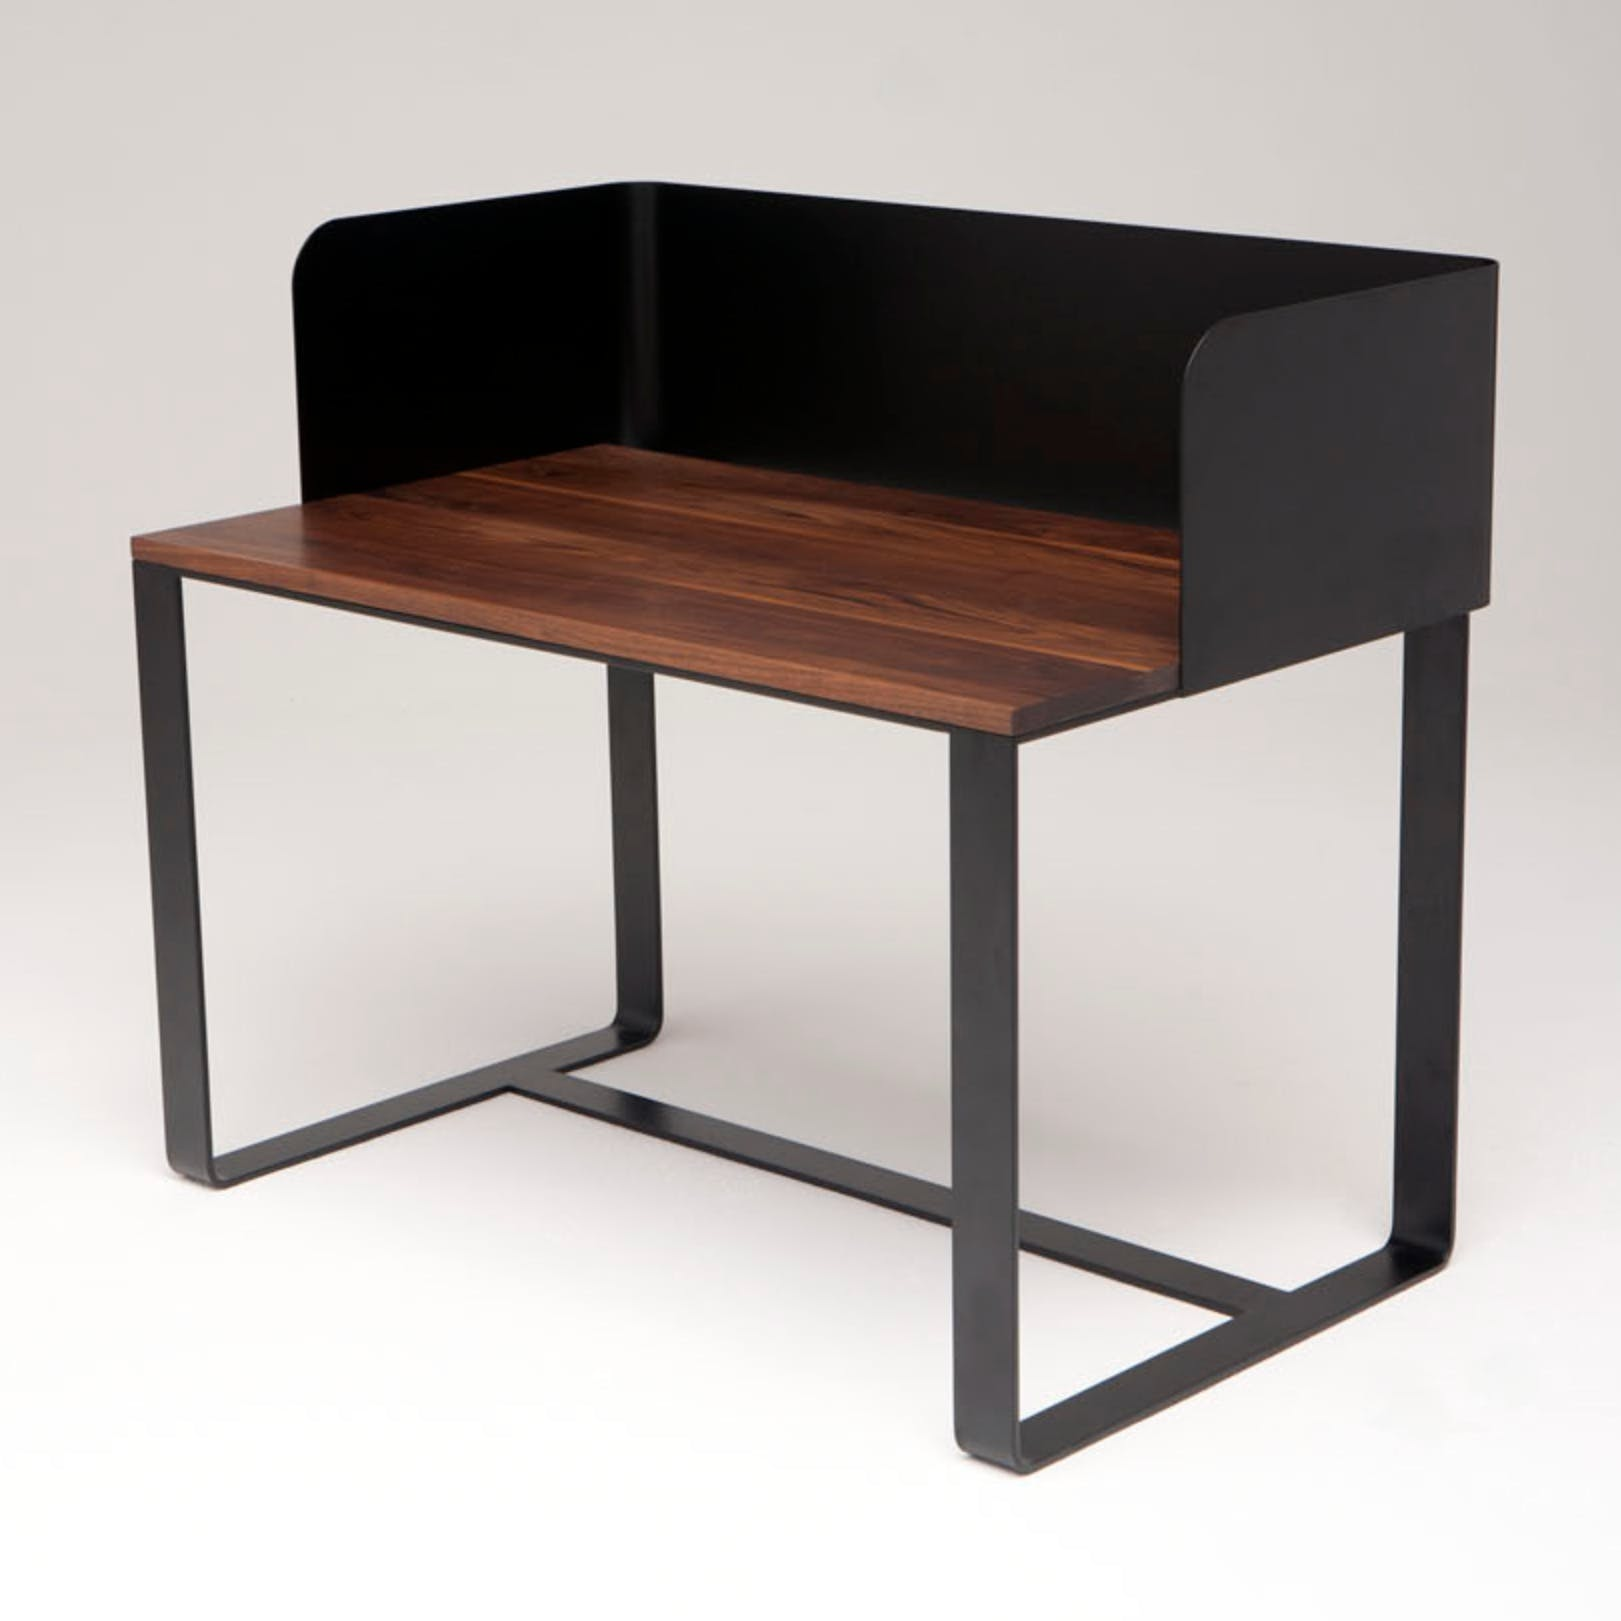 Phase Design Shelter Desk Angle Haute Living